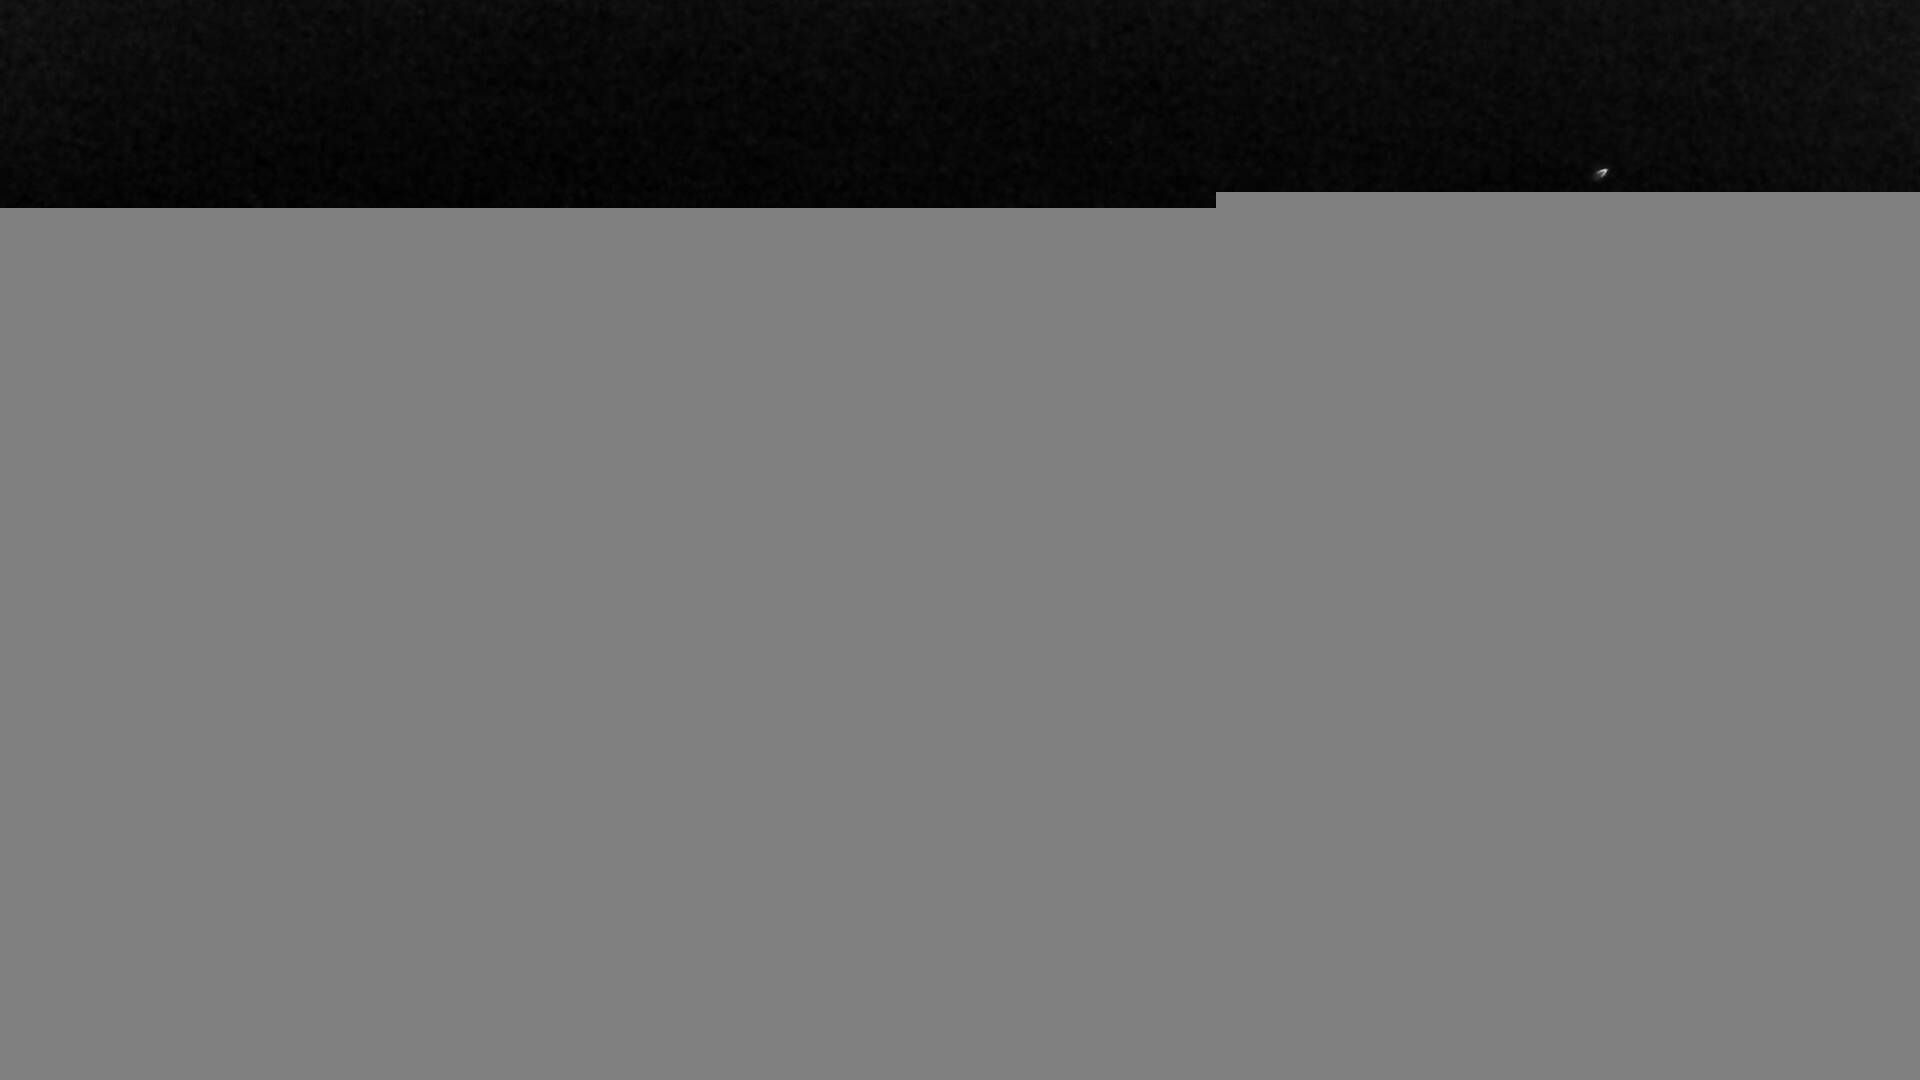 webcam Santa Caterina Valfurva (SO, 1740 m) in tempo reale